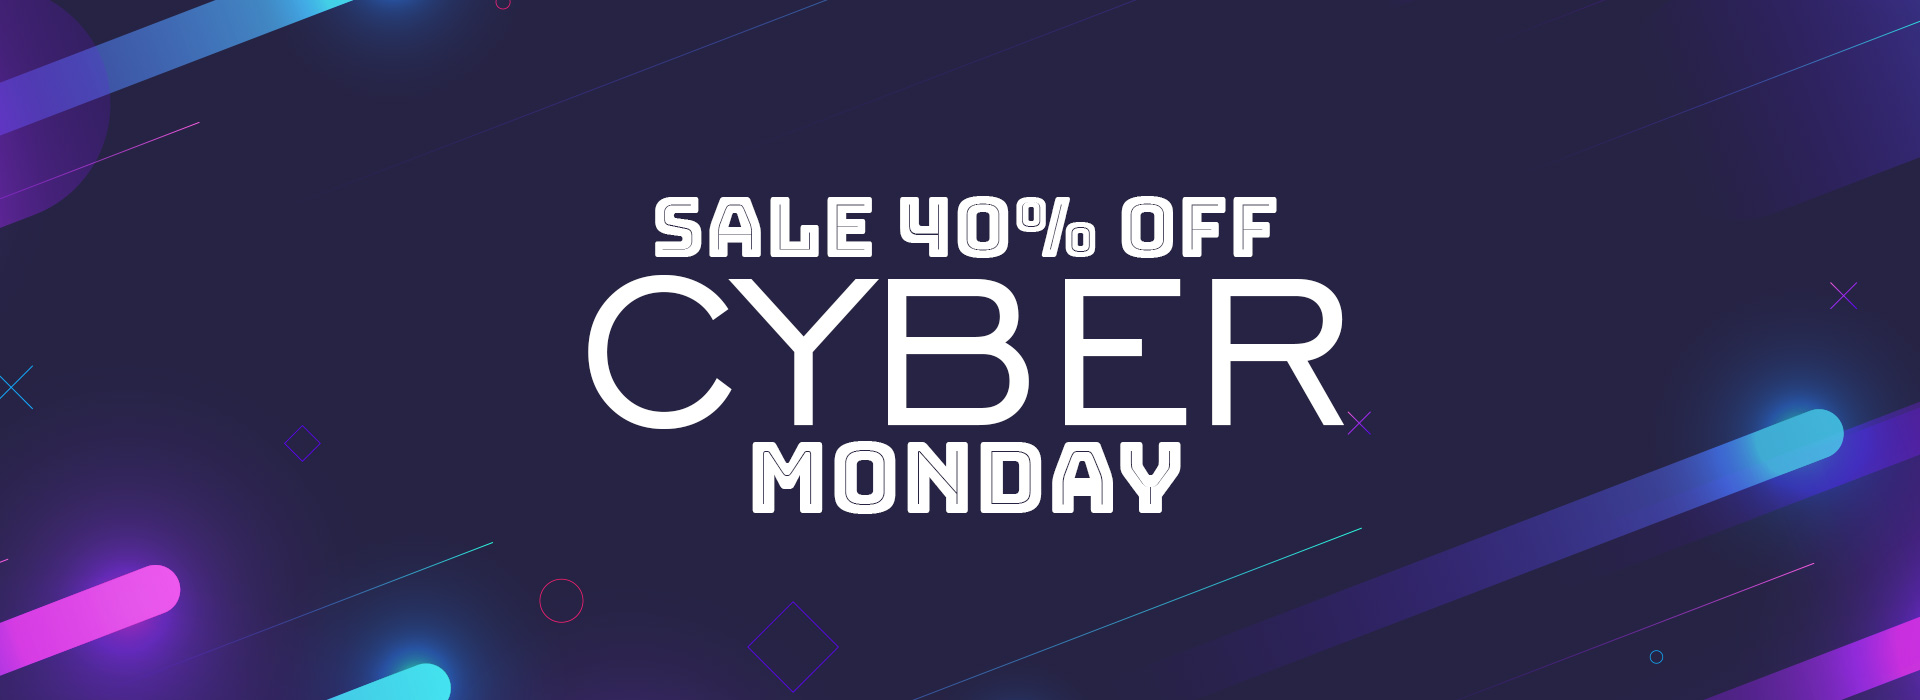 CYBER MONDAY SALE 40% OFF